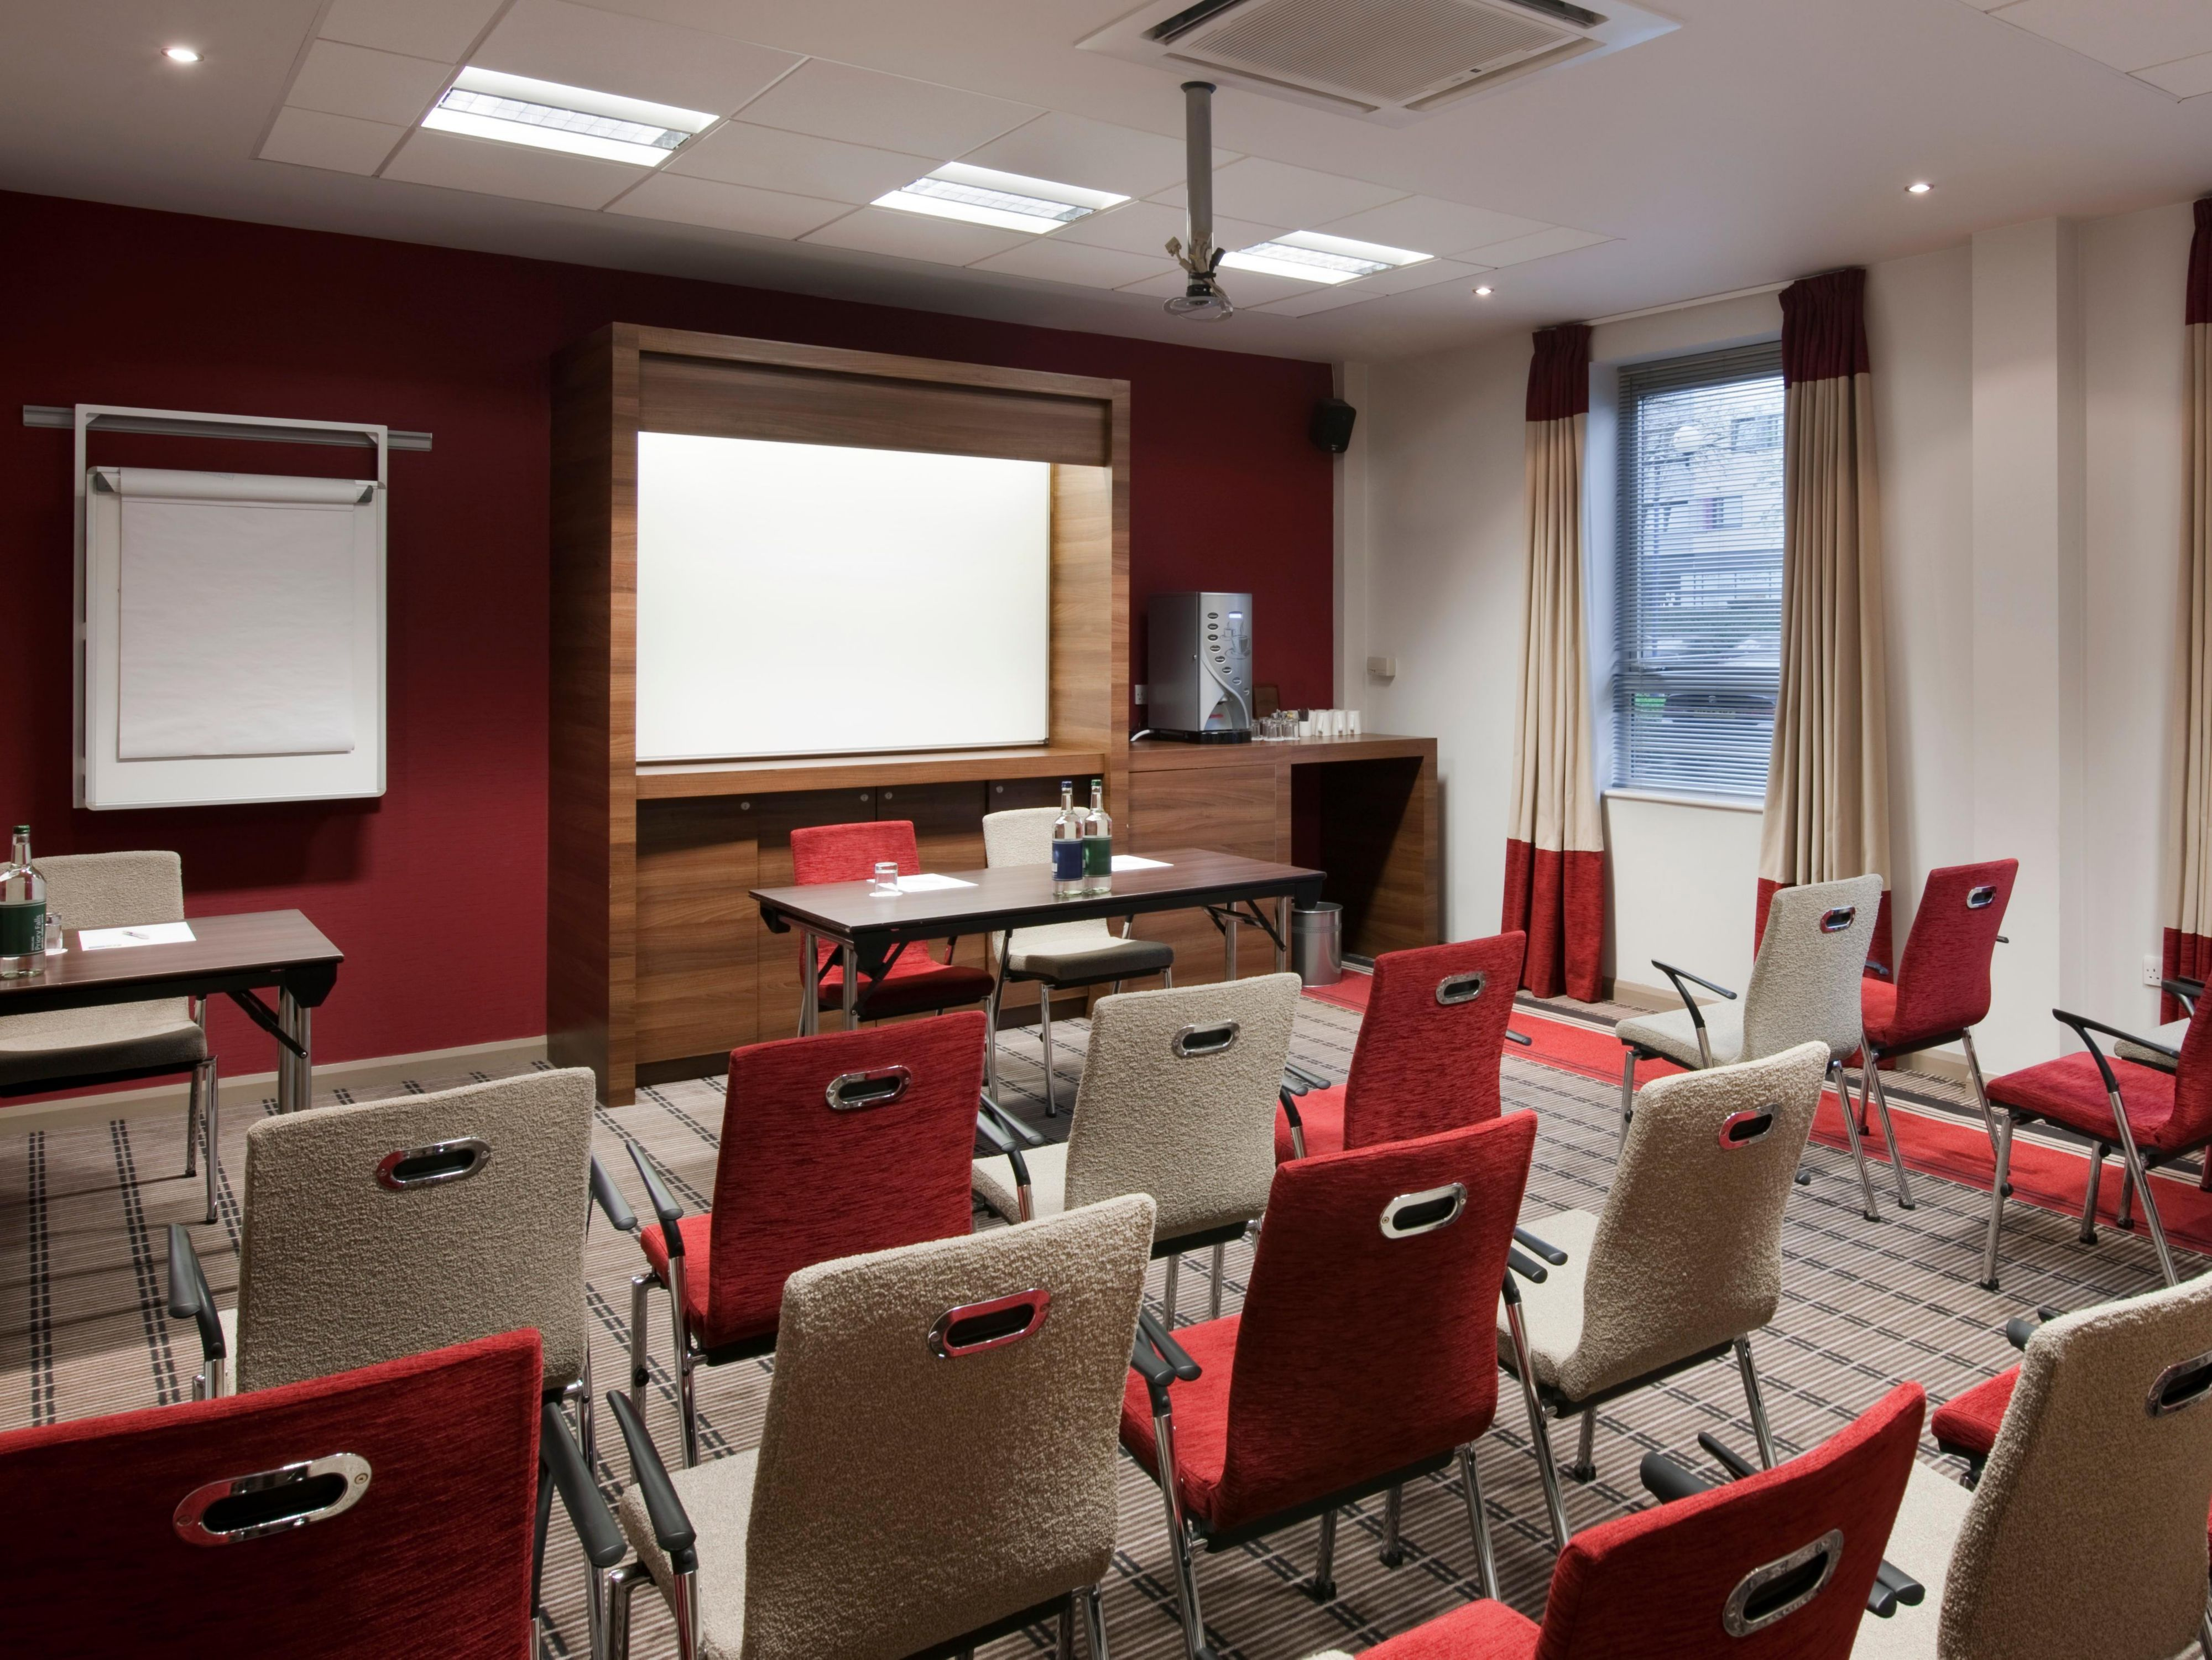 Meeting room facilities at our Leeds city centre hotel